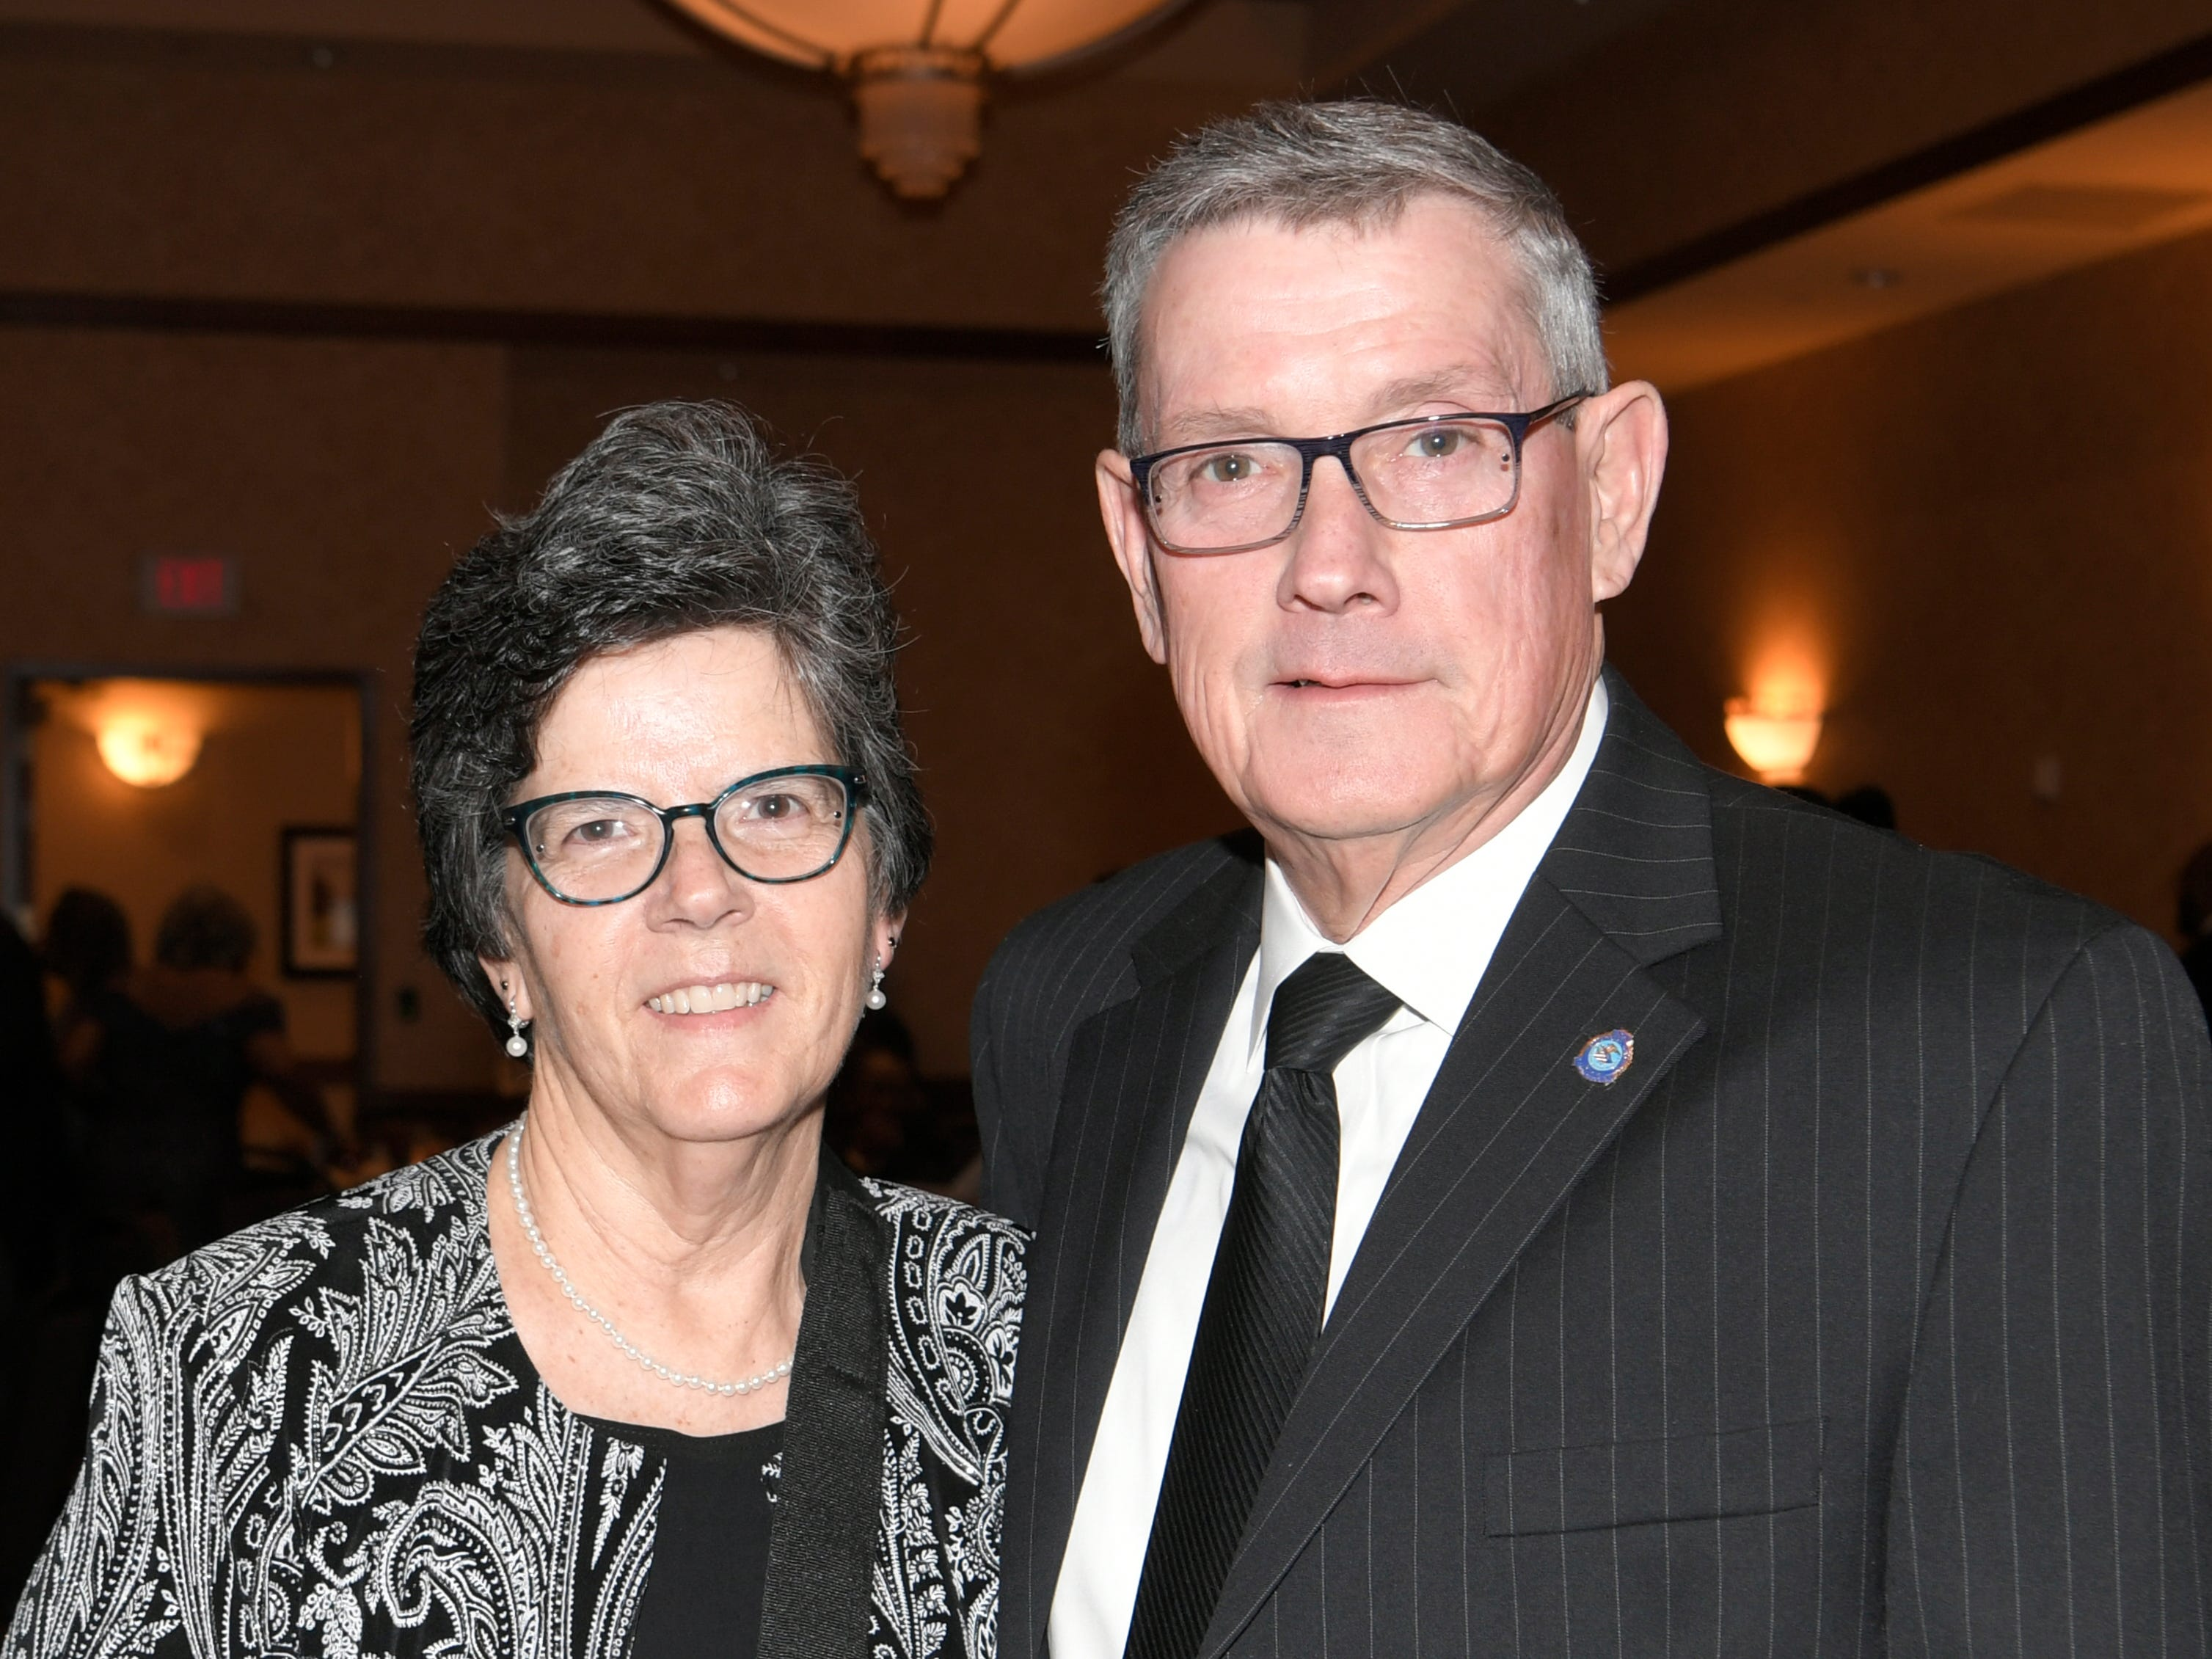 Lynn and Dusty Rhoades at the African American Heritage Society's 18th Annual Black Tie Affair at the Embassy Suites in Franklin on Sat., Feb. 2, 2019.